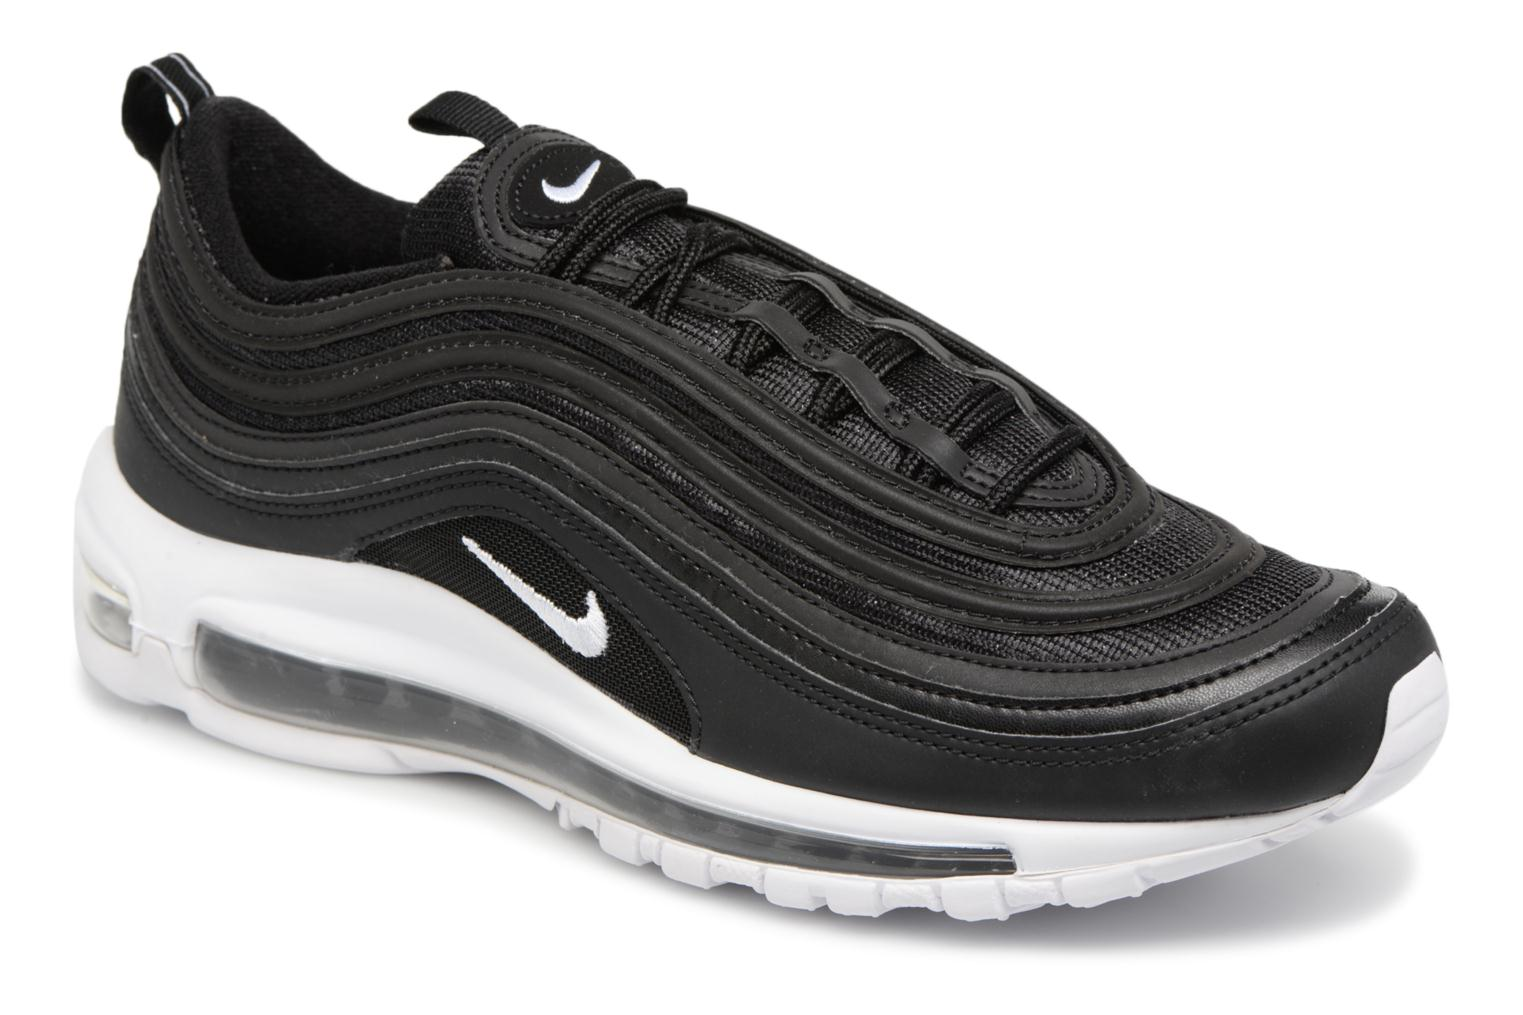 on sale 40676 af691 ... promo code for sneakers nike nike air max 97 svart detaljerad bild på  paret 53190 c7331